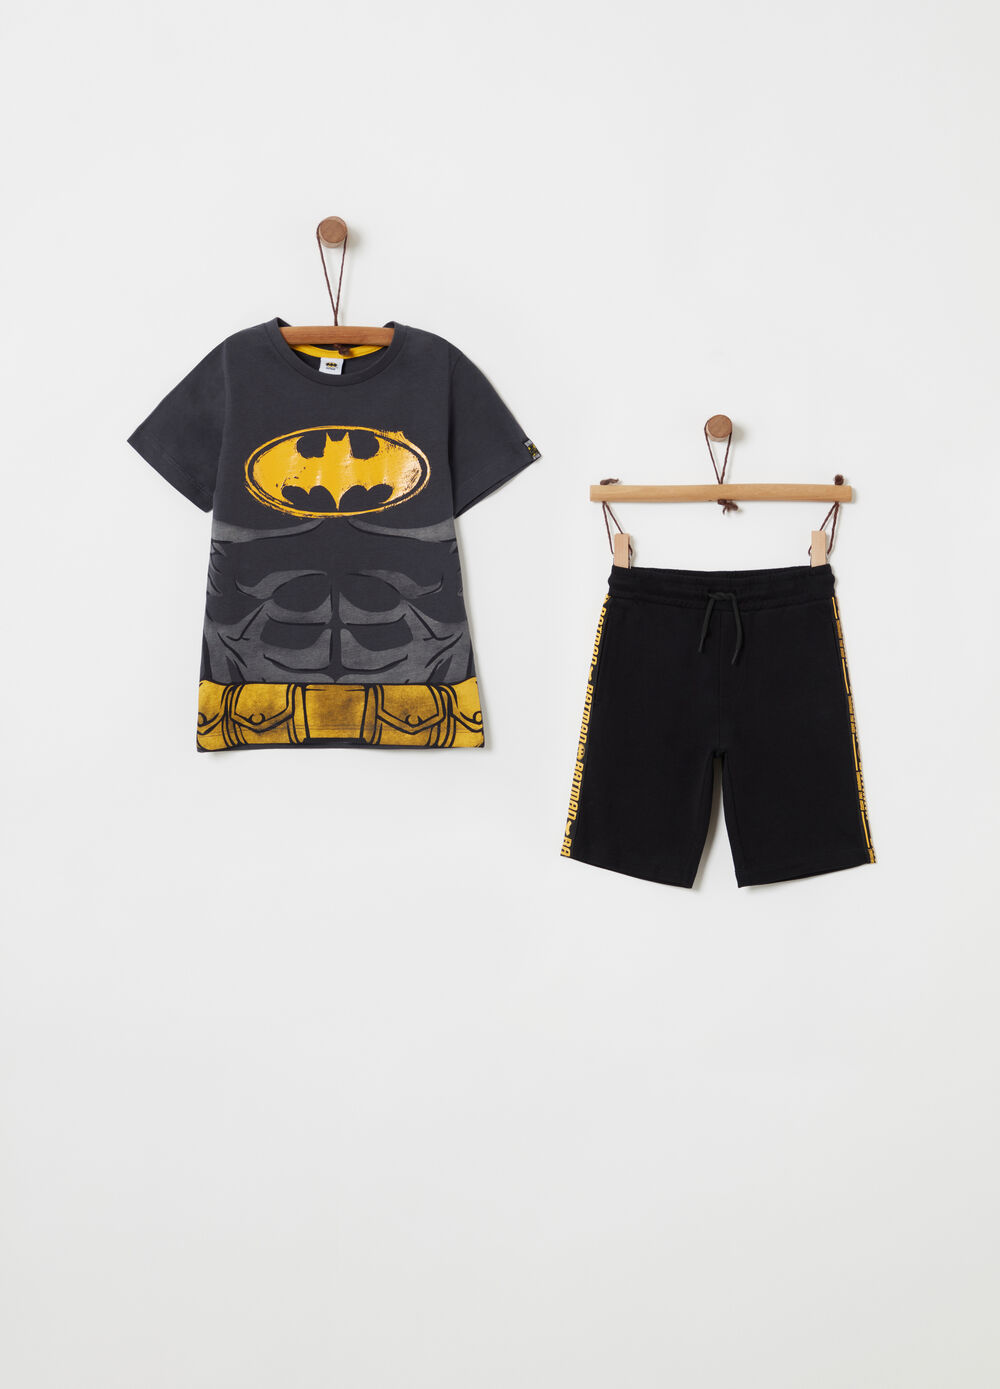 T-shirt and shorts set with Batman print